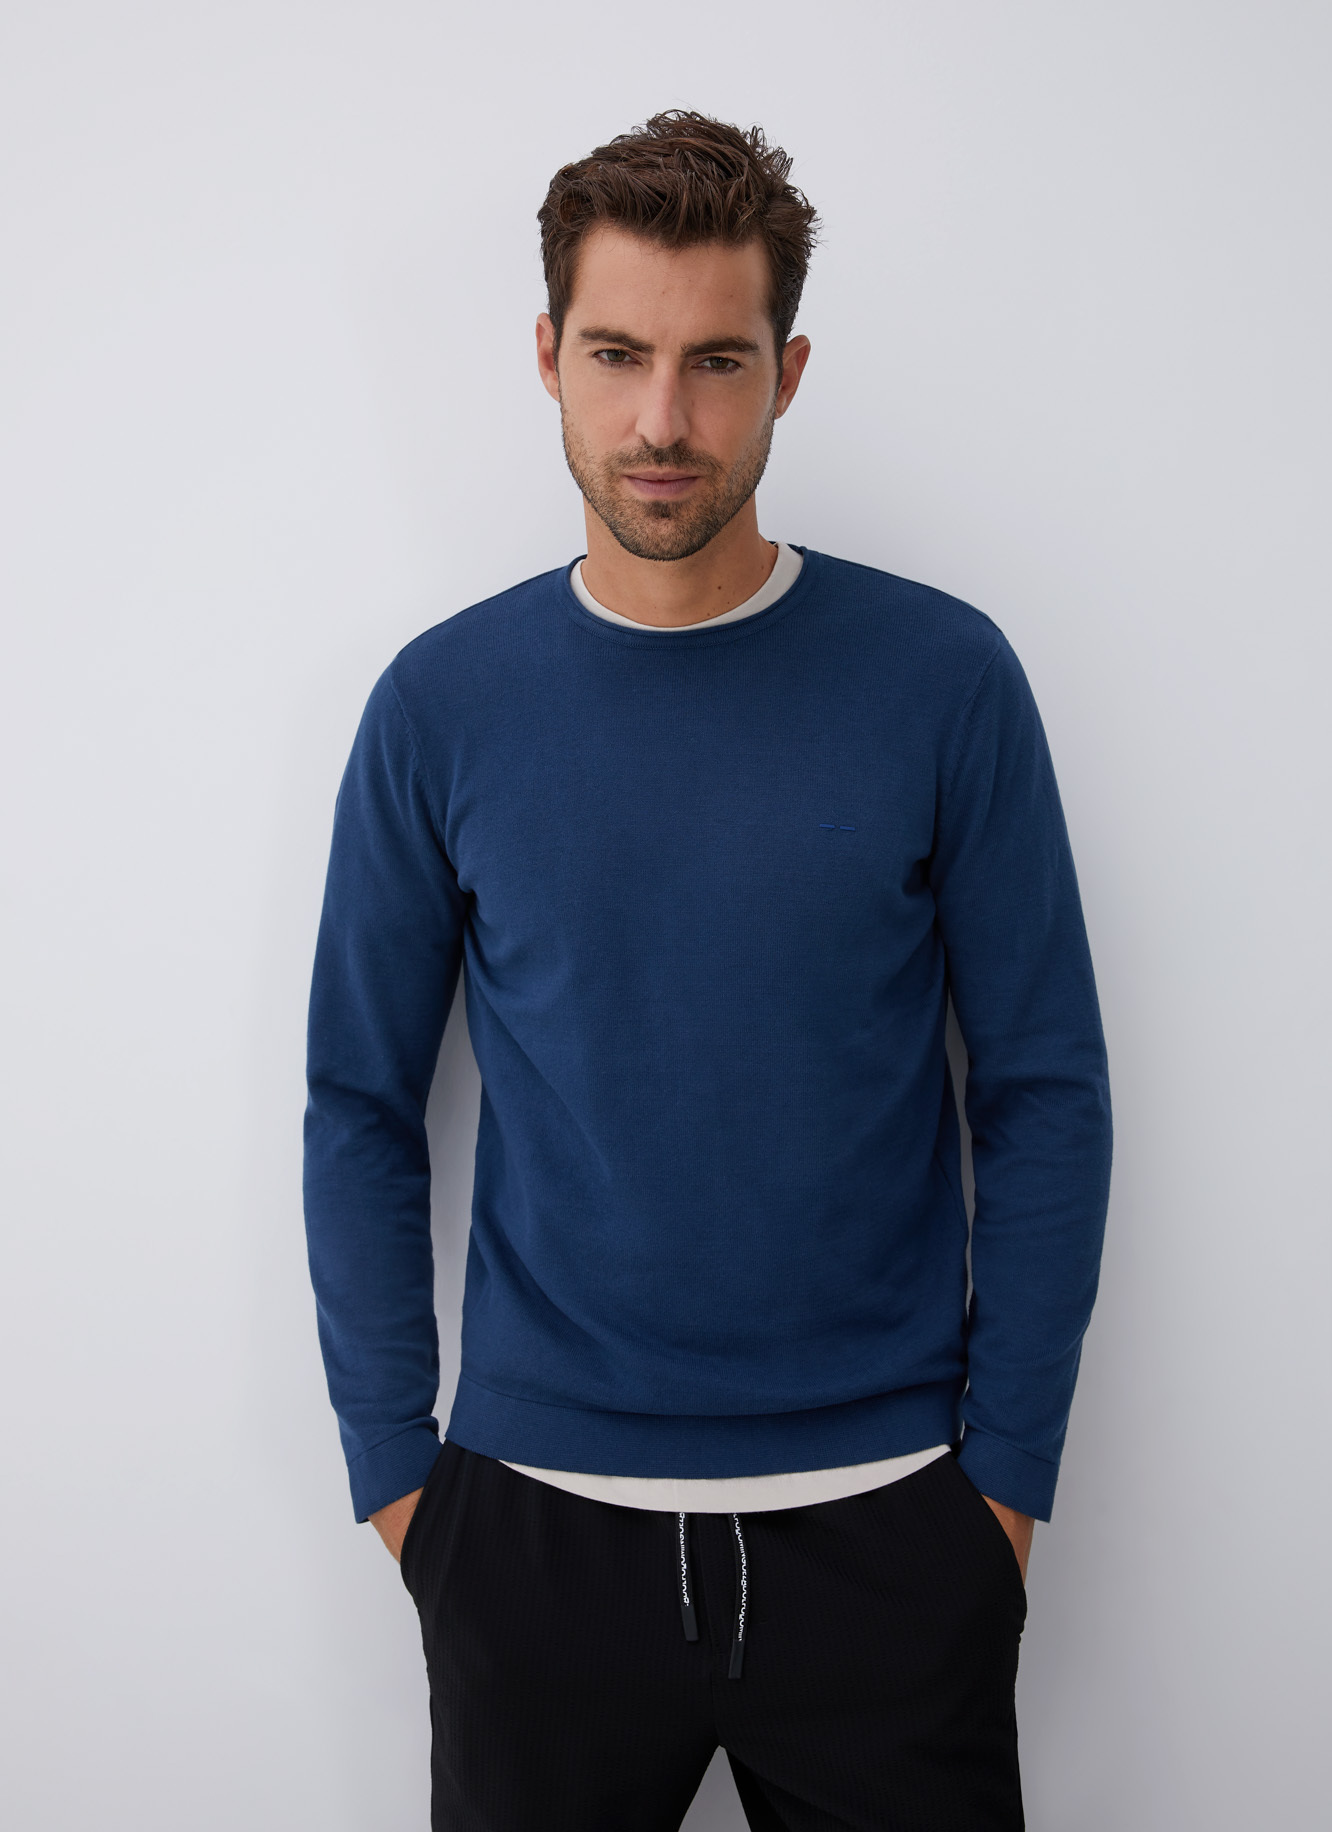 COTTON SWEATER WITH ROLL EDGE NECK